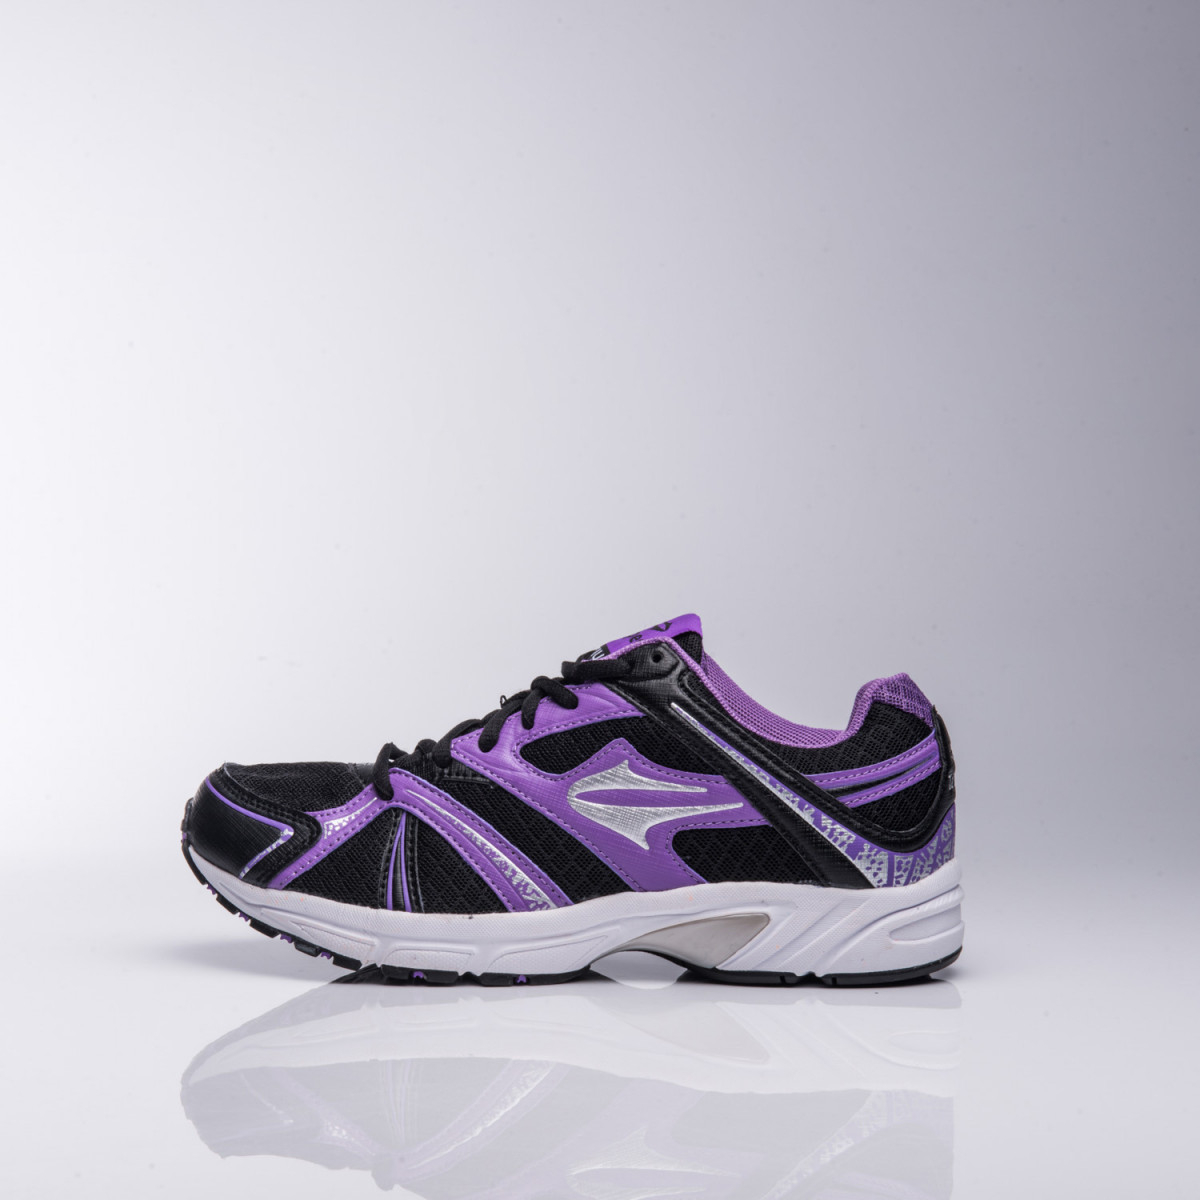 ZAPATILLAS TOPPER LADY CITIUS